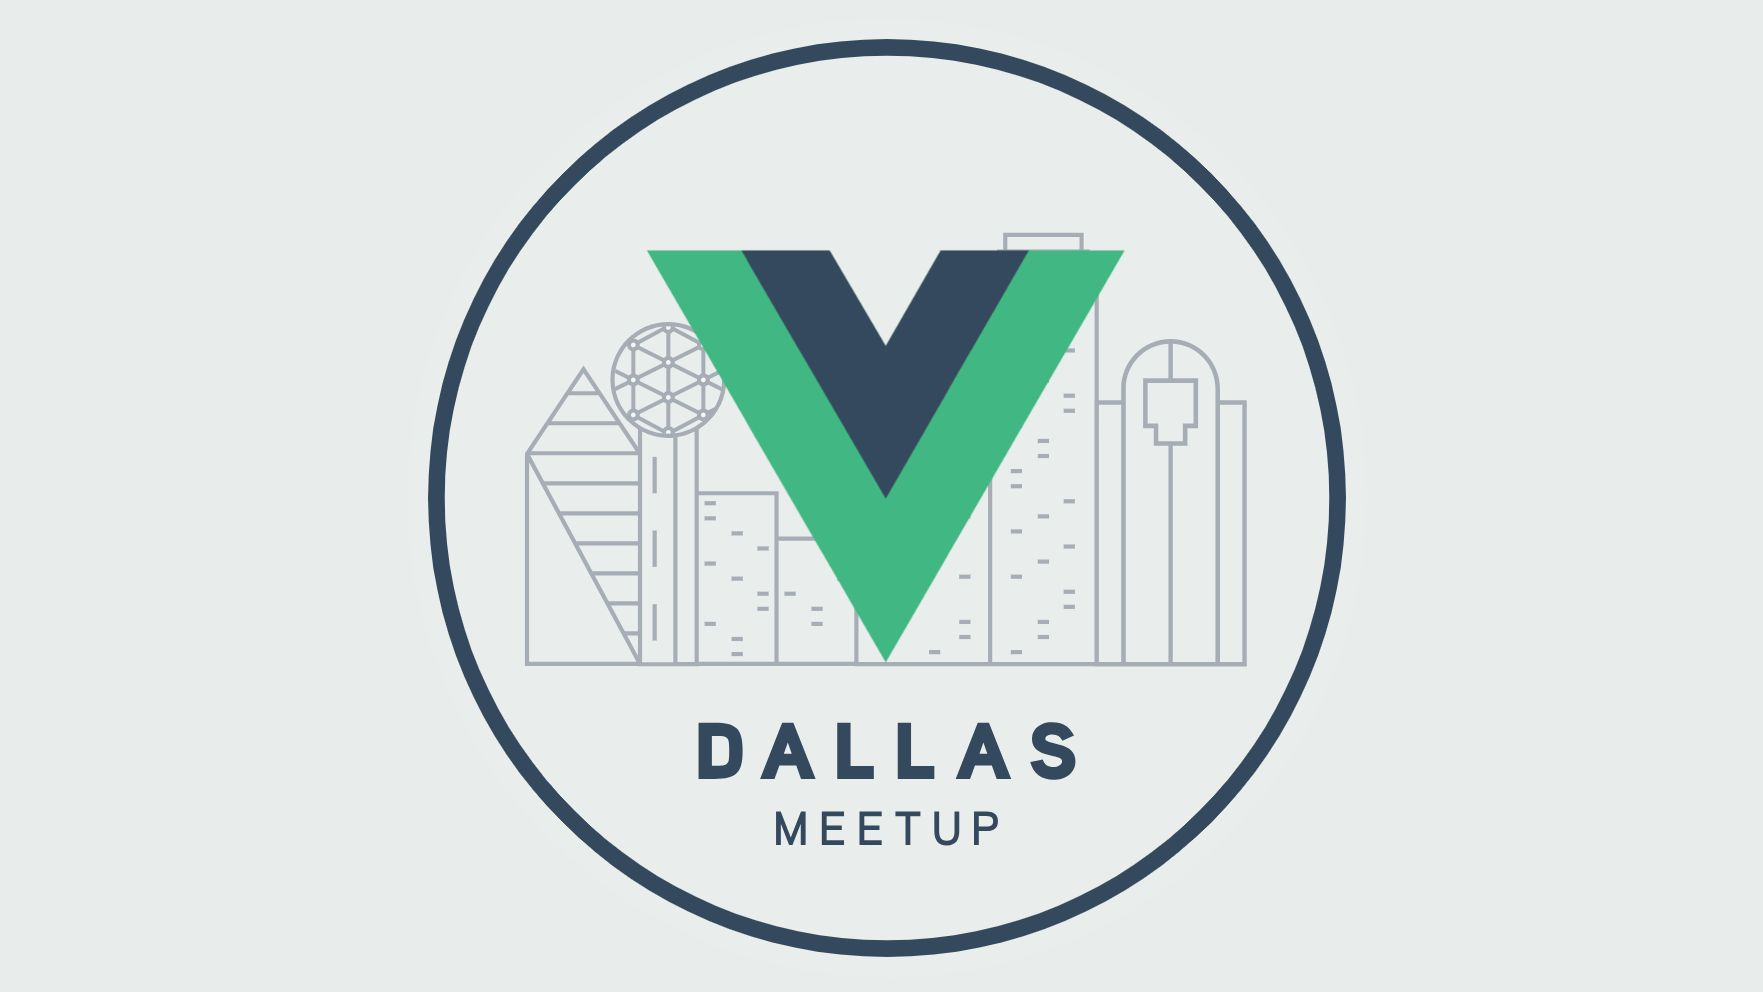 Dallas Vue Meetup